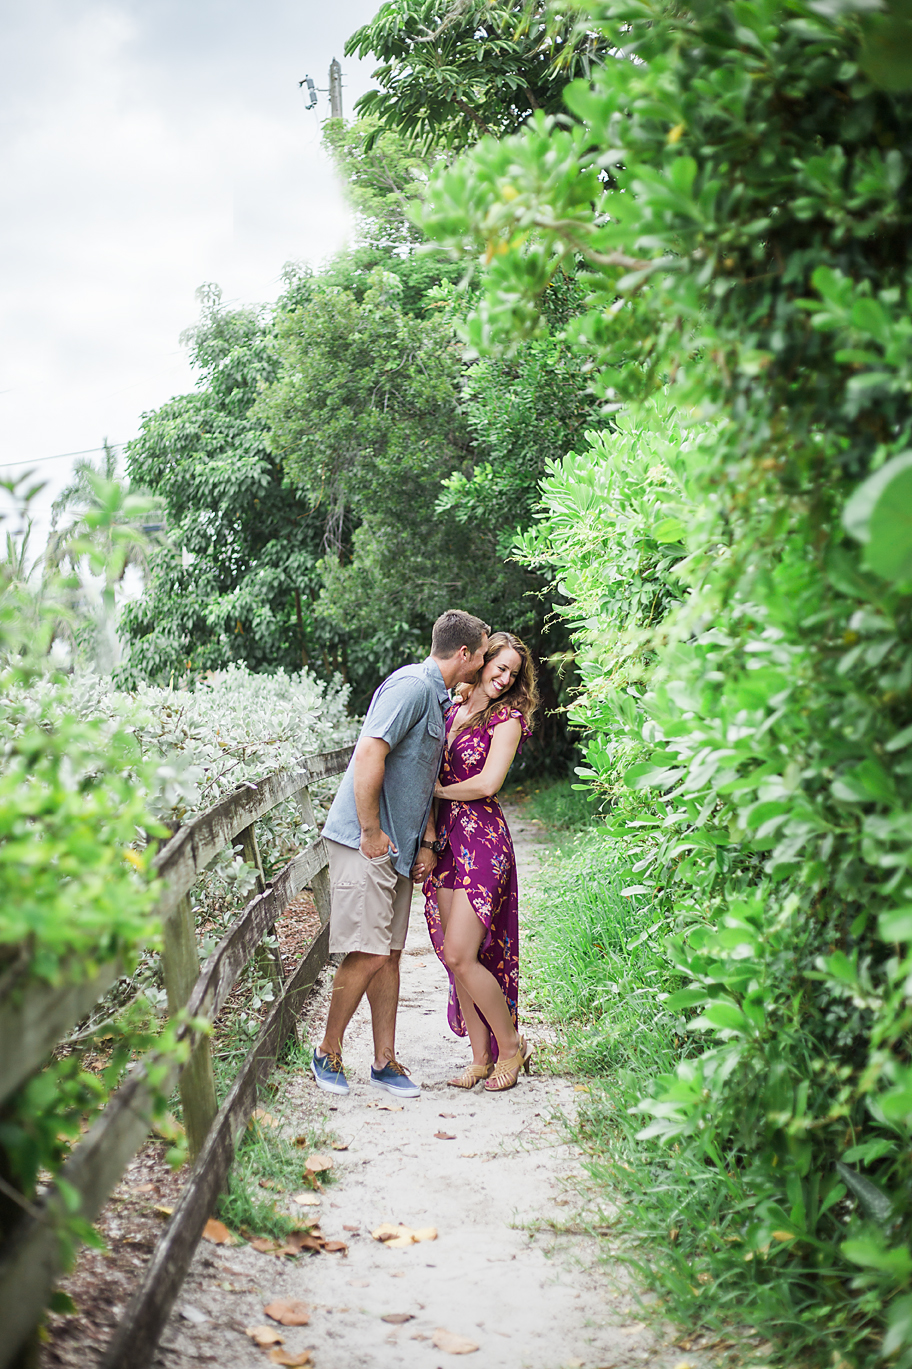 Marybeth + Brendan - Anna Maria Island Engagement Session - Emily & Co. Photography - WEB (48).jpg